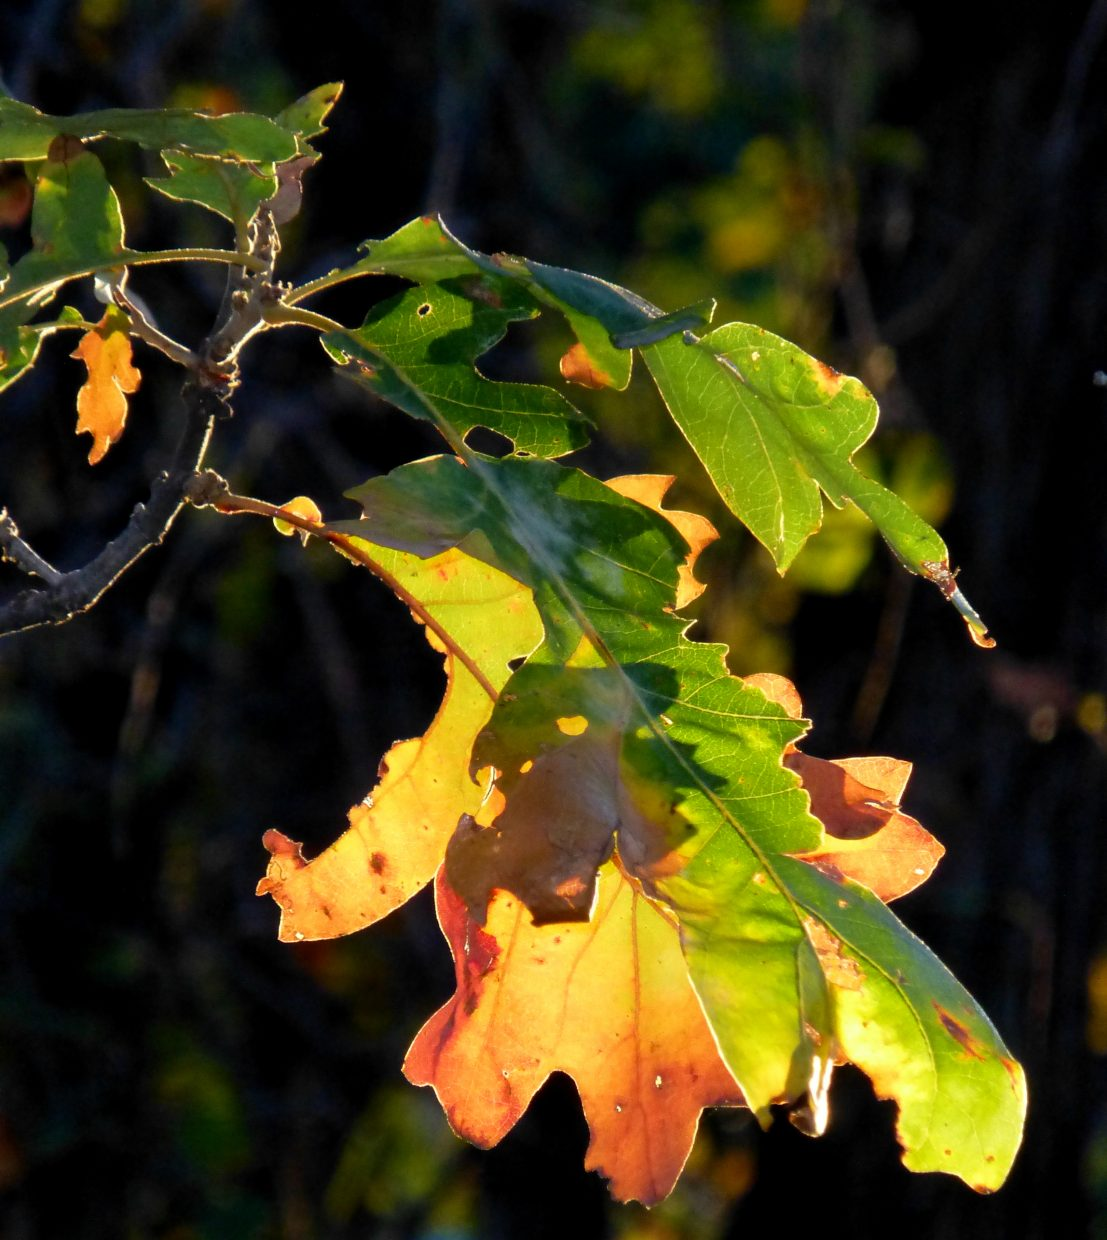 Fall leaves. Taken out by Hilton Gulch. Submitted by: Gail Hanley